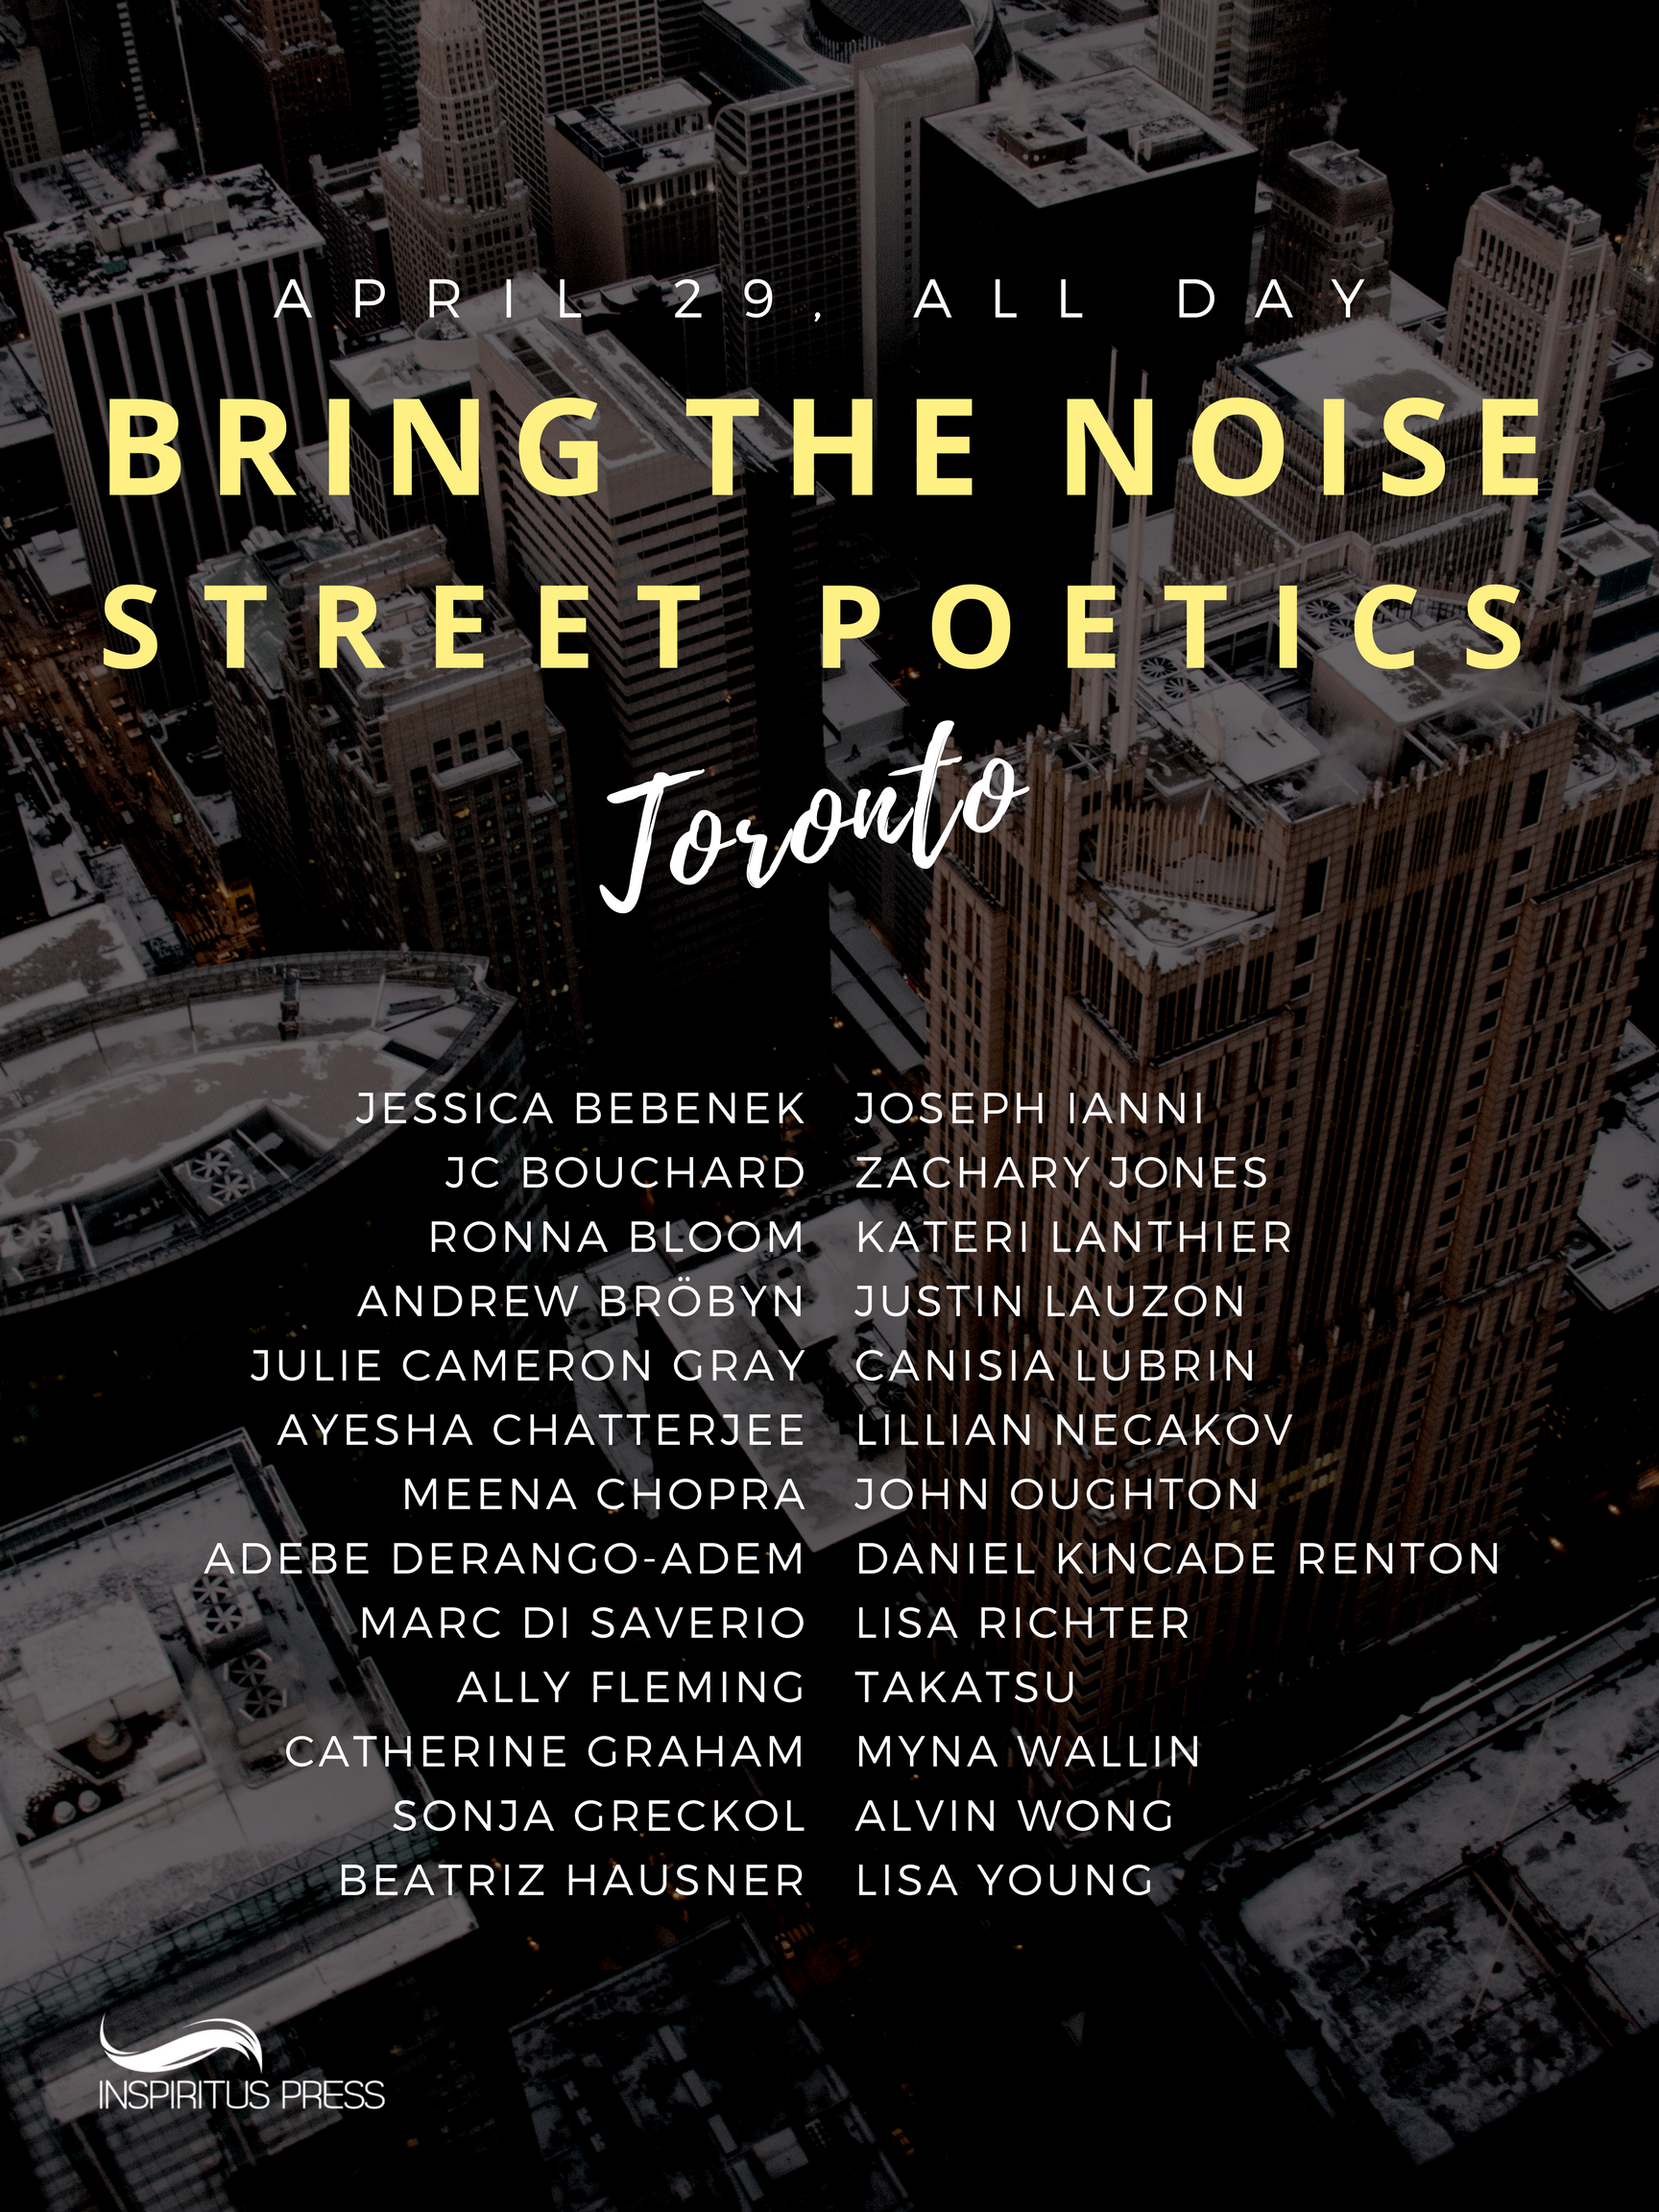 BringtheNoise-poets copy 2